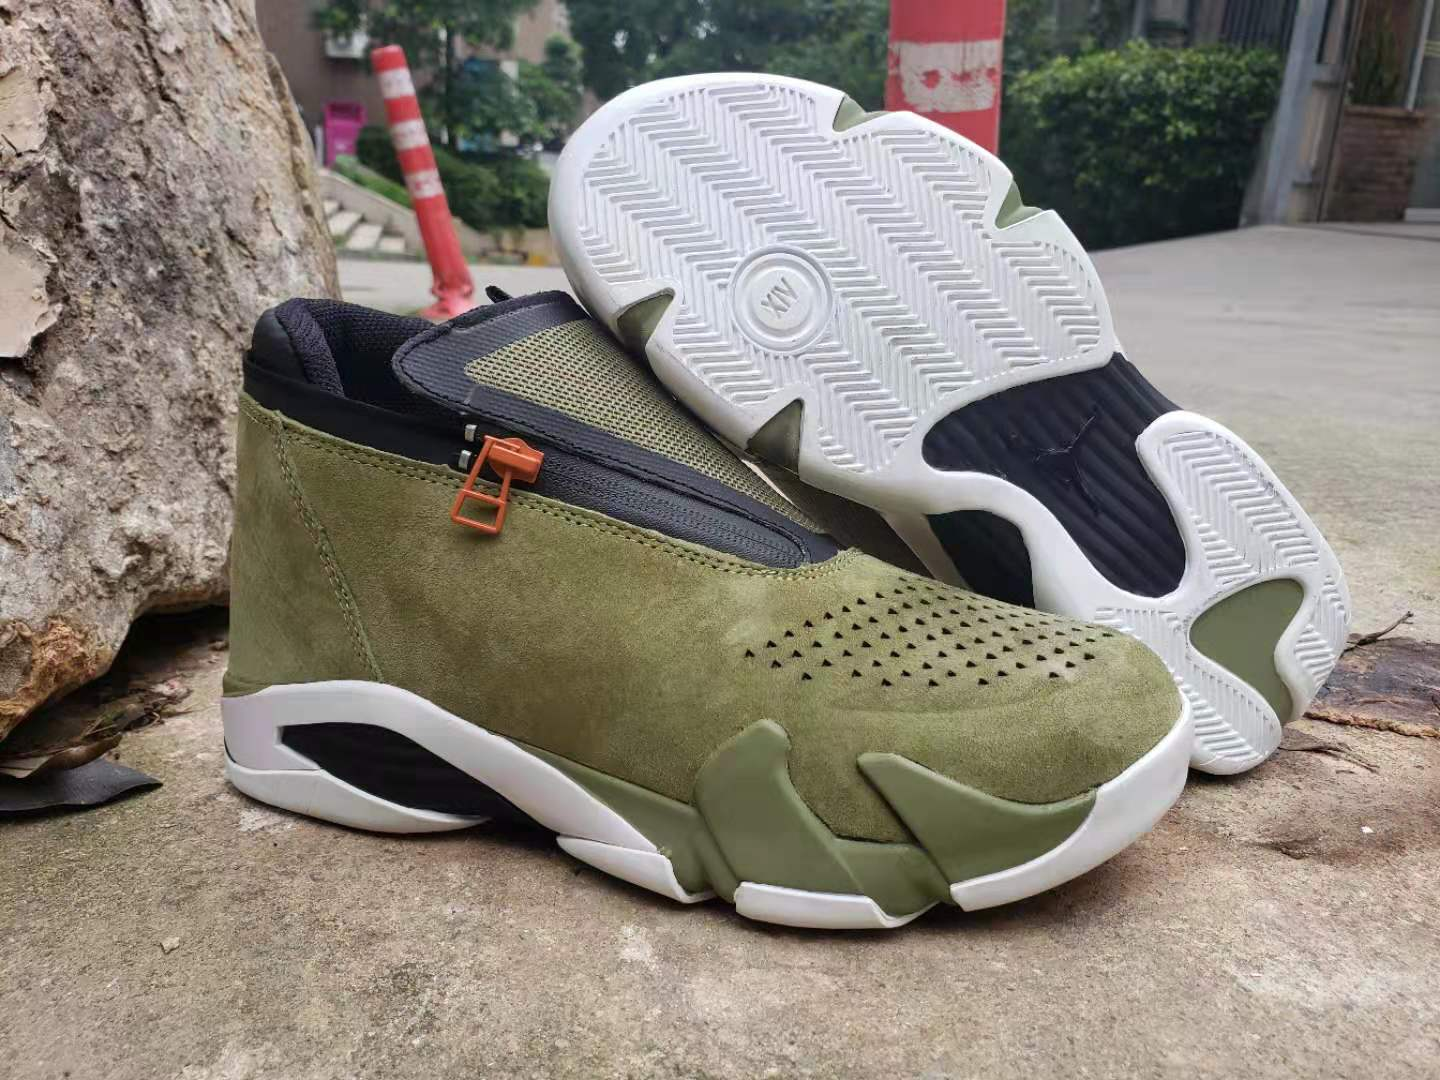 2019 Air Jordan 14 Zipper Army Green Black White Shoes